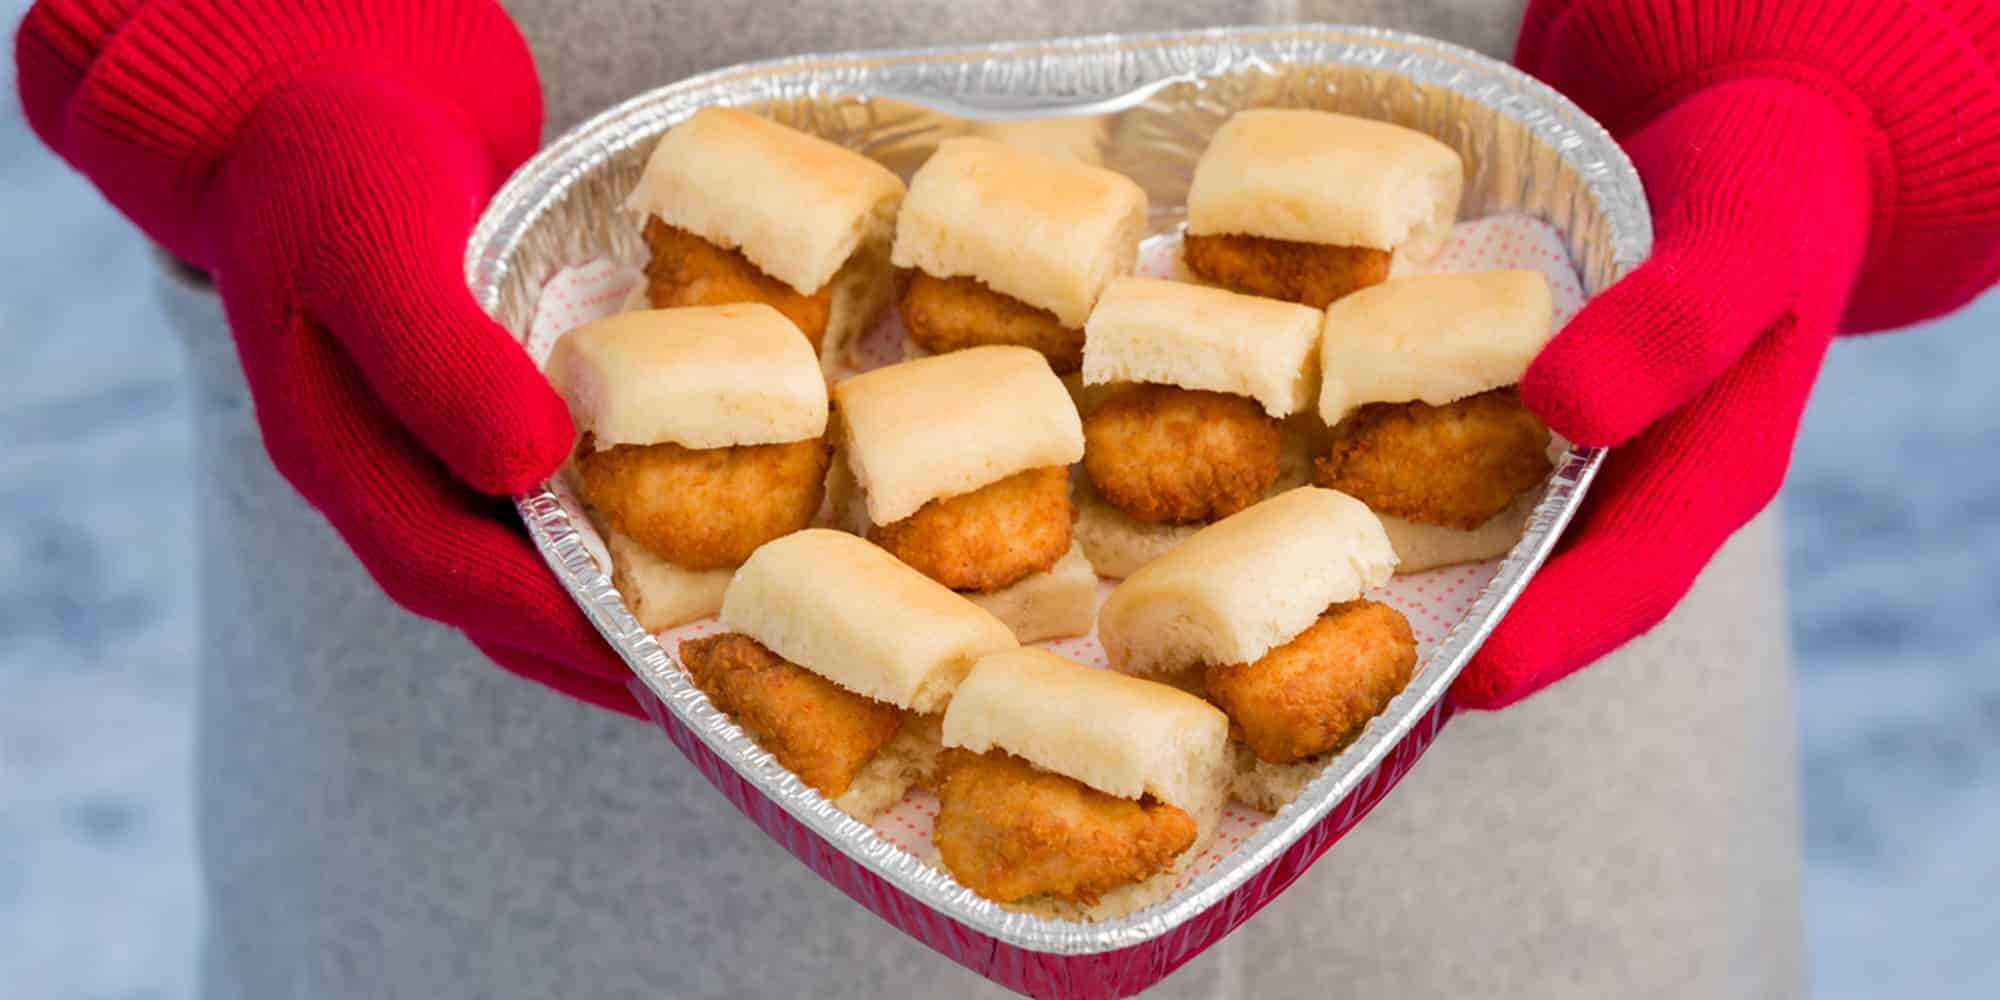 Instead of loving 'Chick Fil A', 'Chick Fil A' now is love.